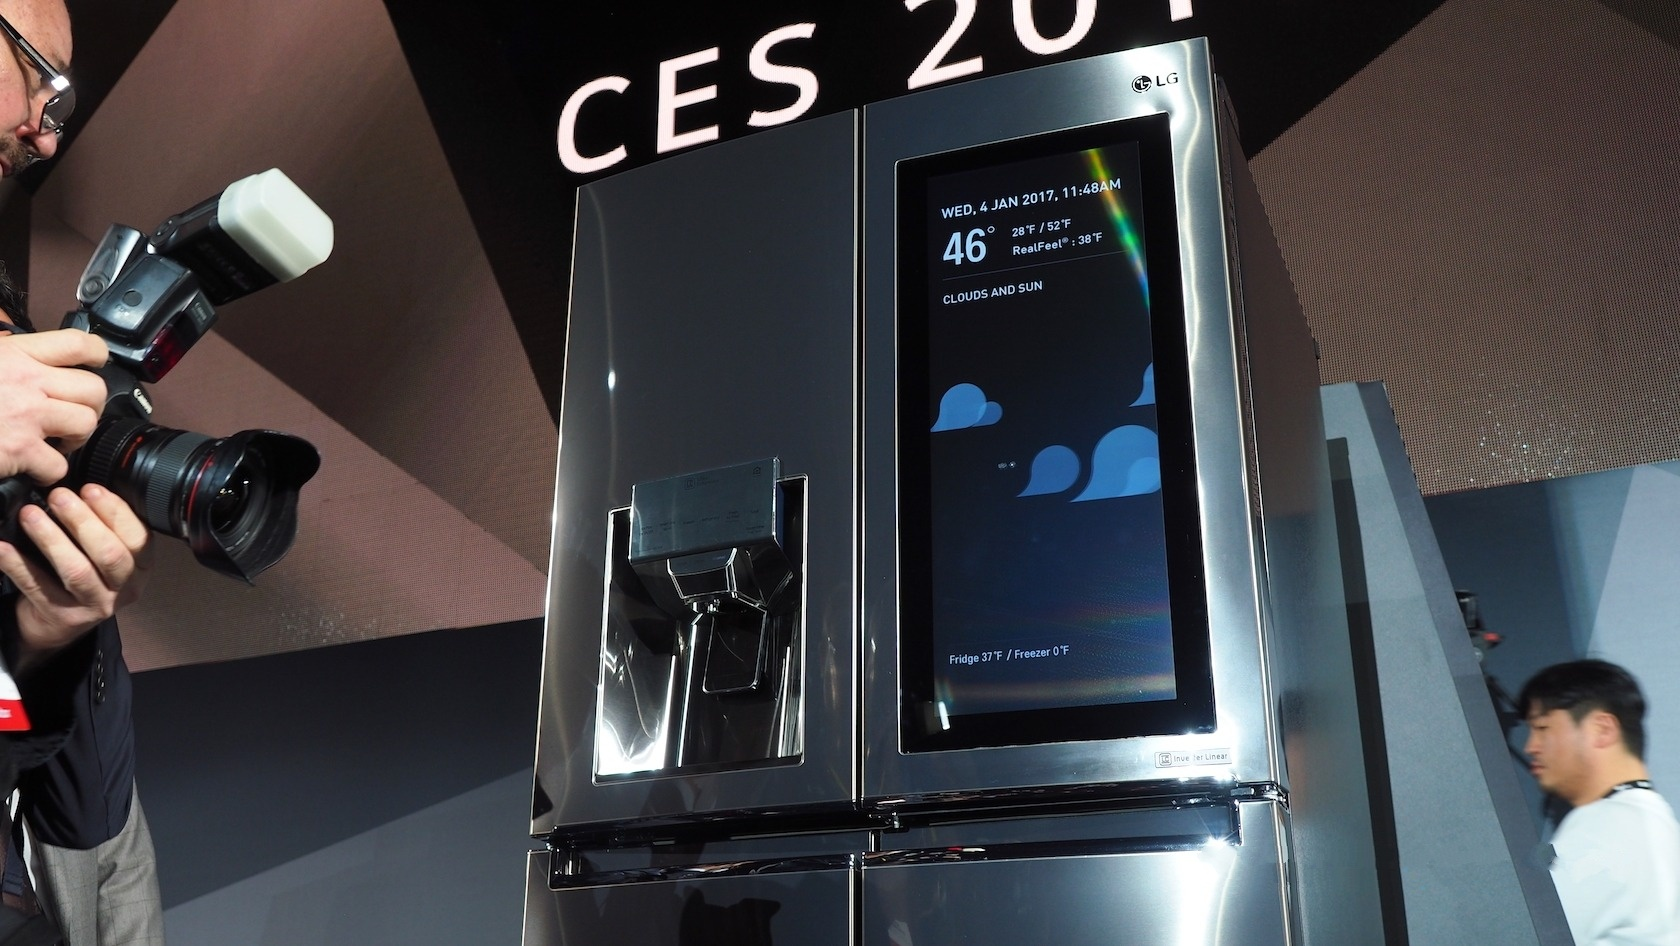 LG_Smart_Fridge_webOS_CES_0.jpg